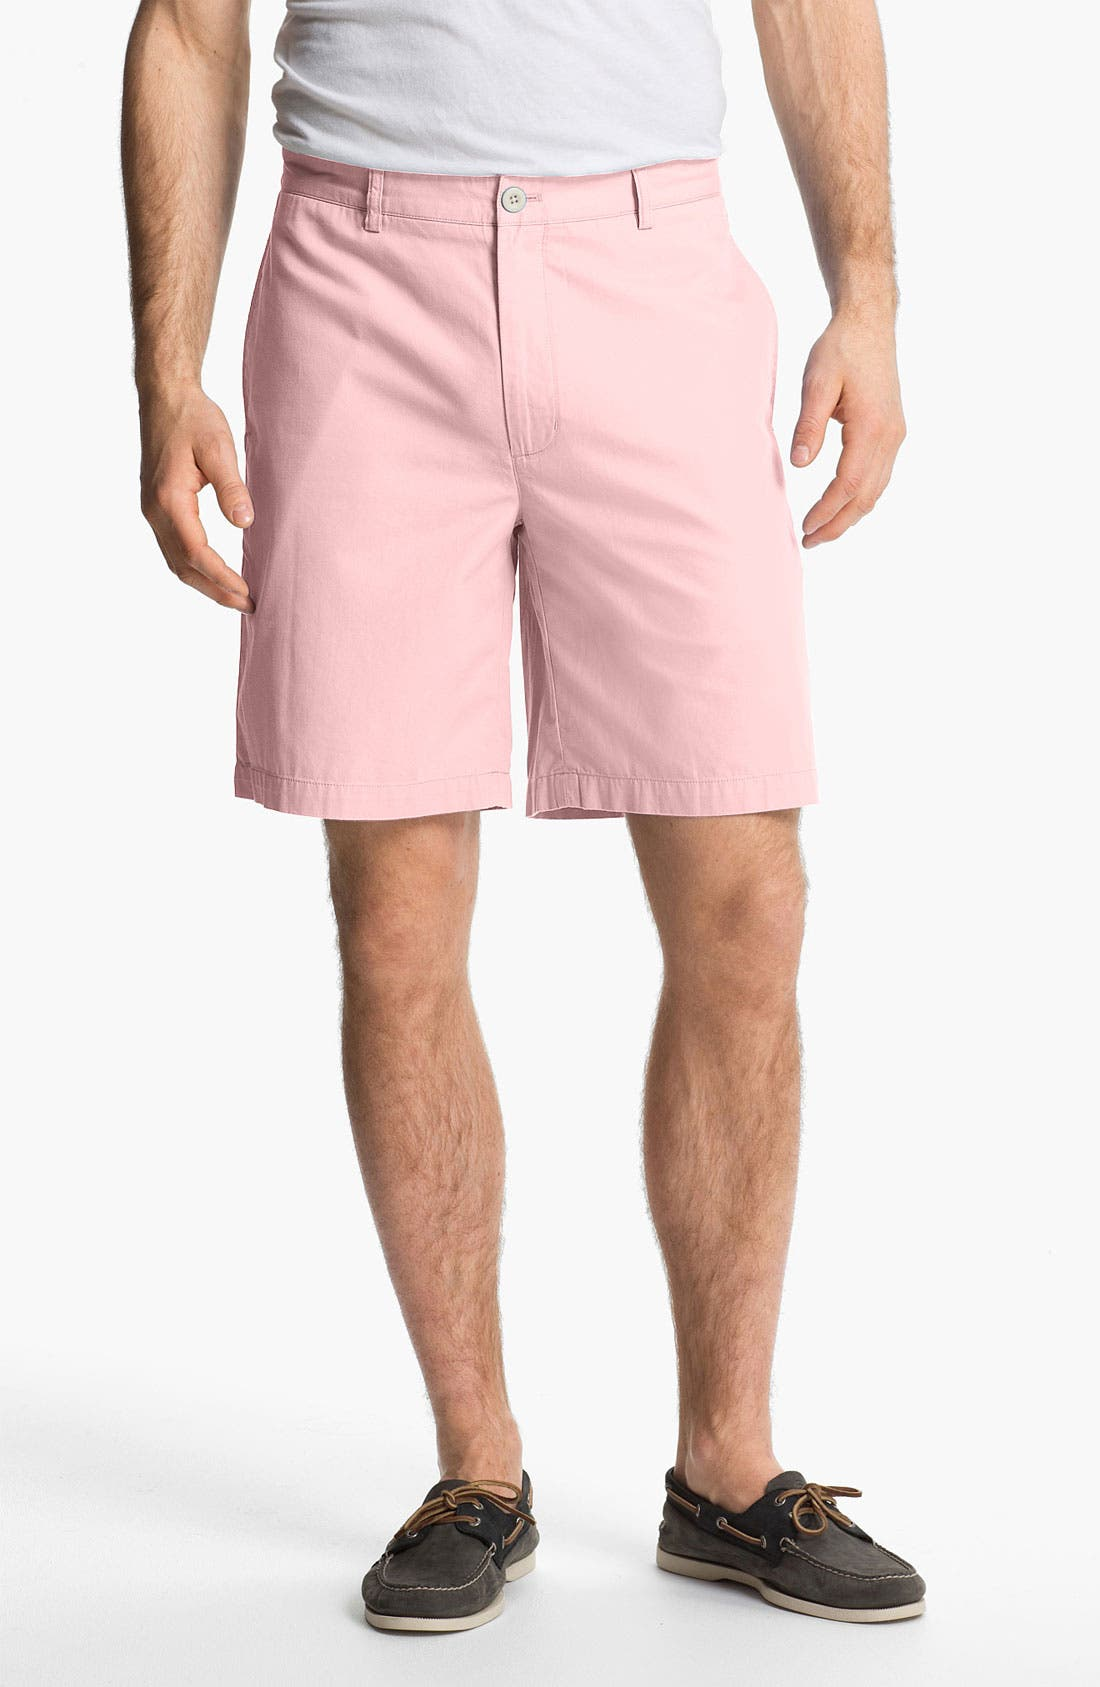 Main Image - Vineyard Vines 'Summer Club' Shorts